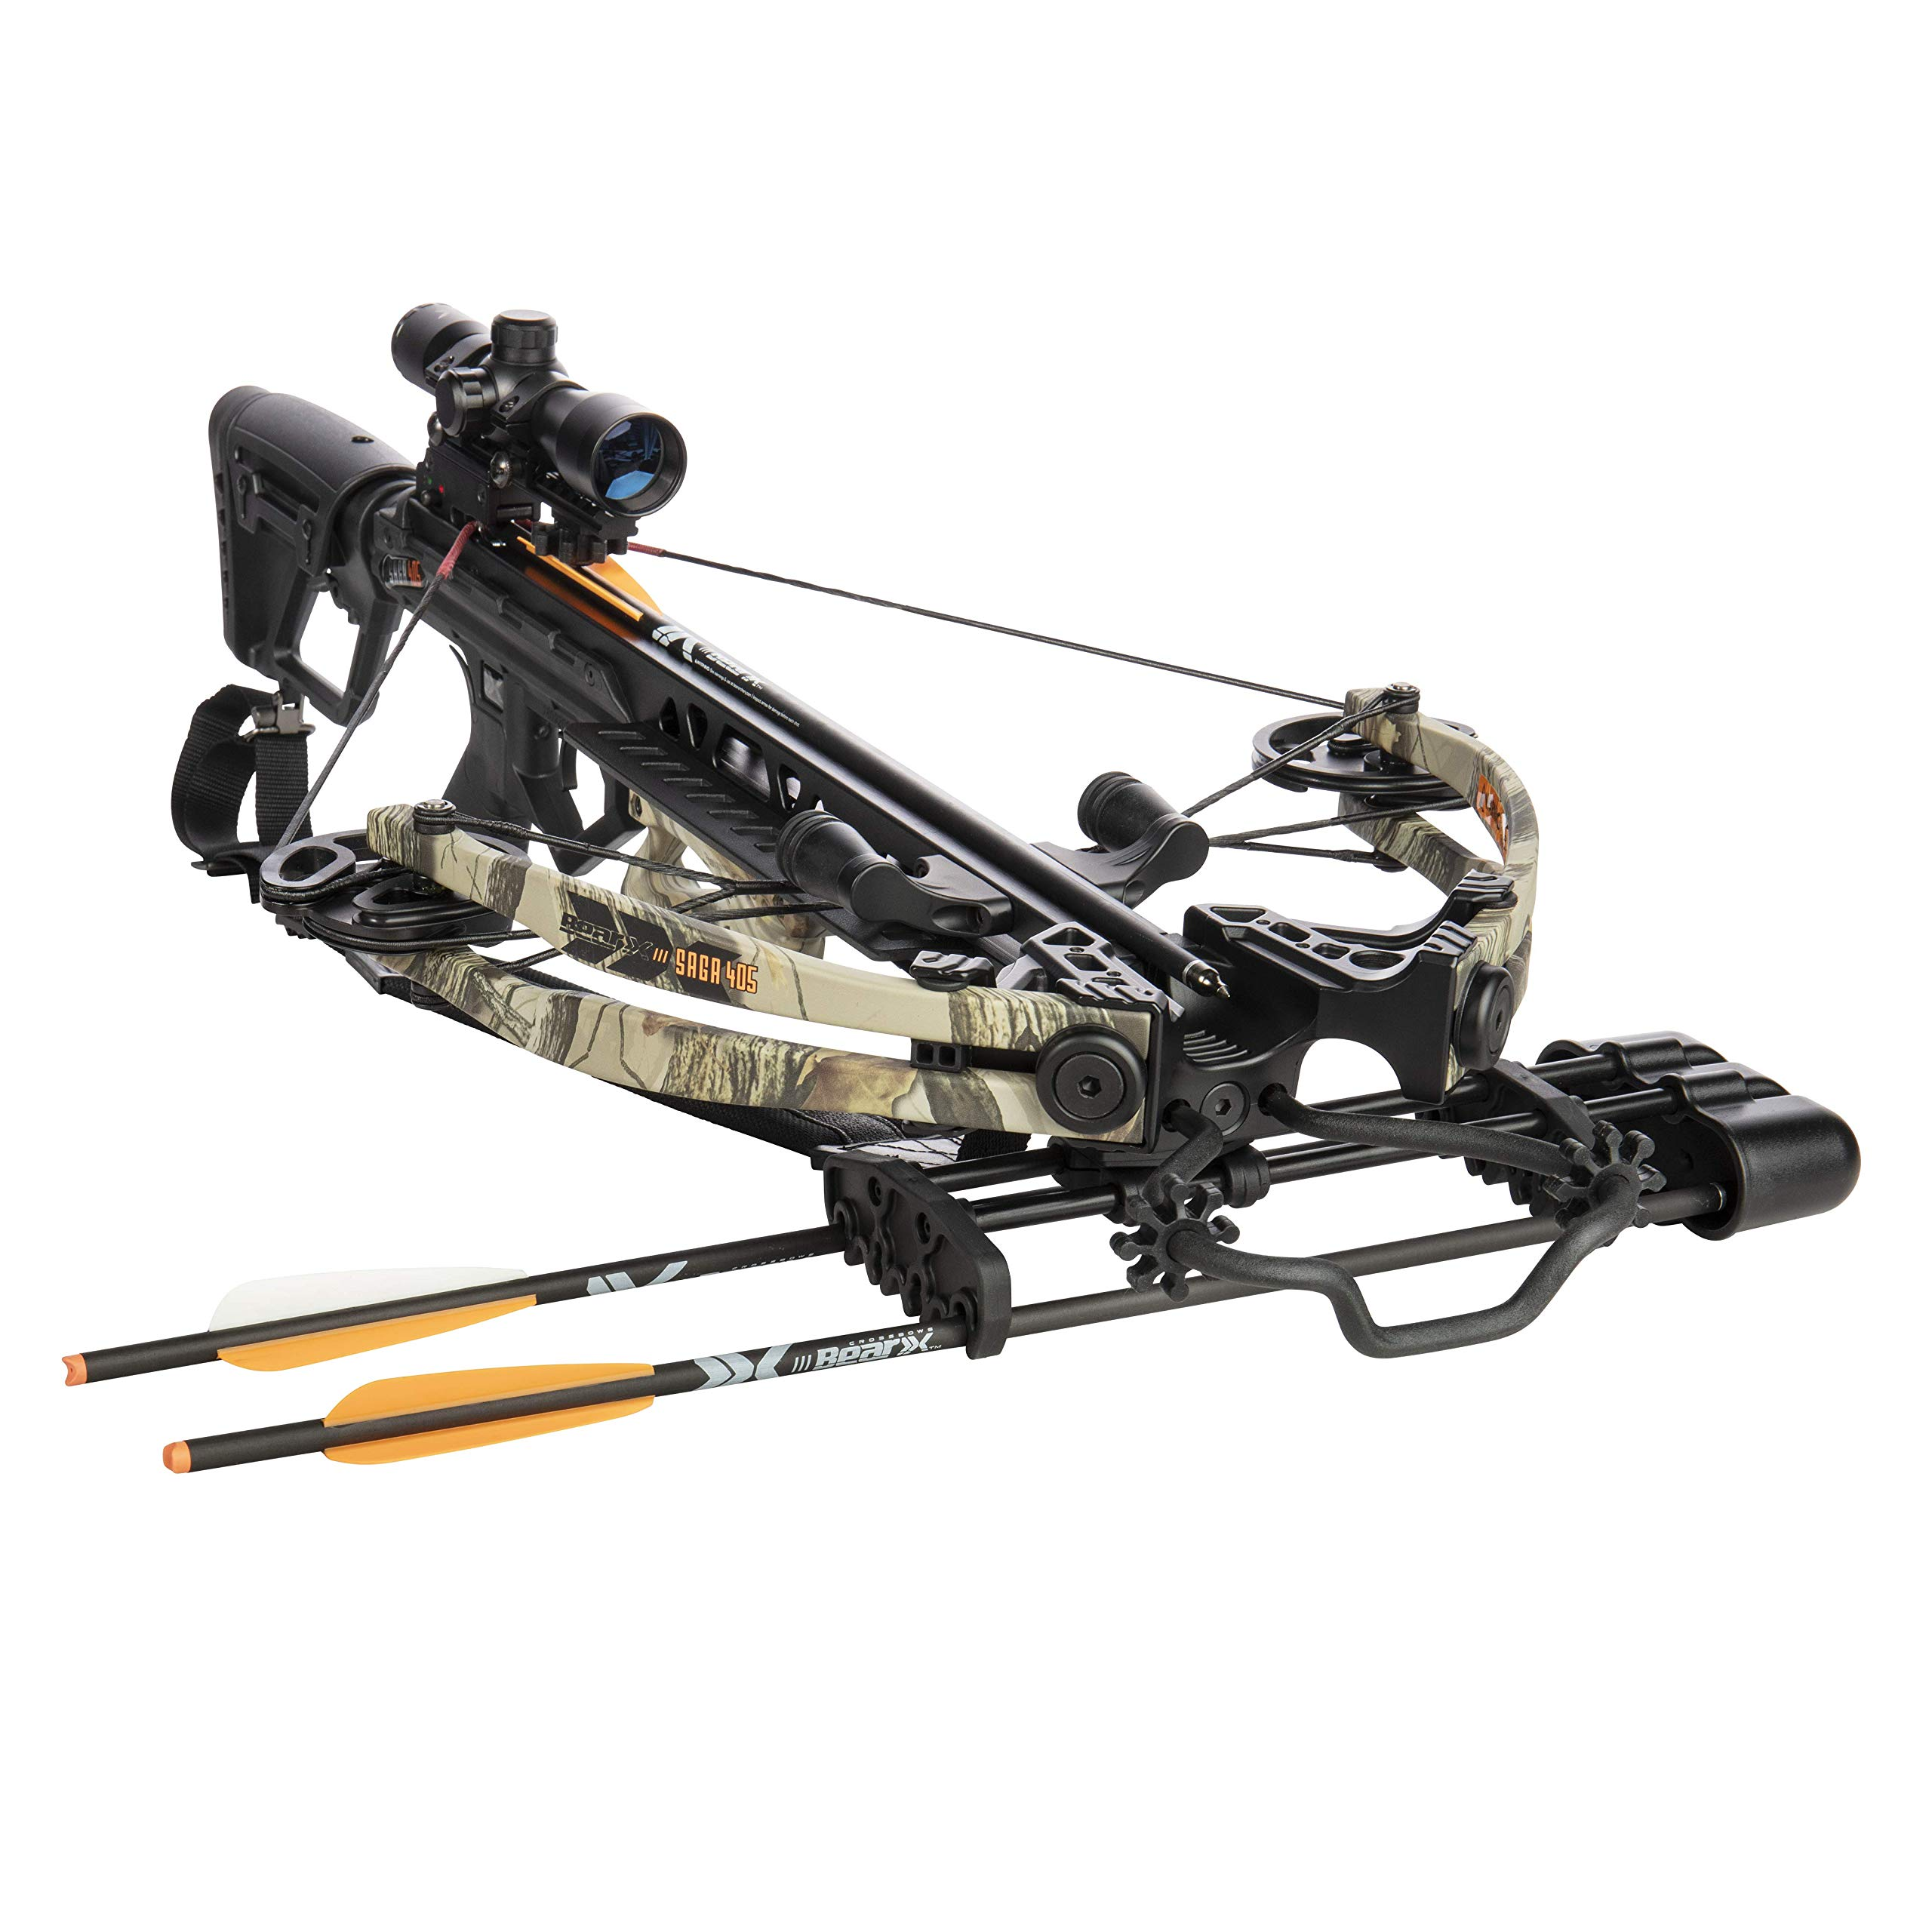 Bear Archery AC93A2A7200 Bear X Saga 405 Ready to Shoot Crossbow Package with 4x32 Scope, Quiver, Bolts, Cocking Rope, and Wax, Black/Camo by Bear Archery